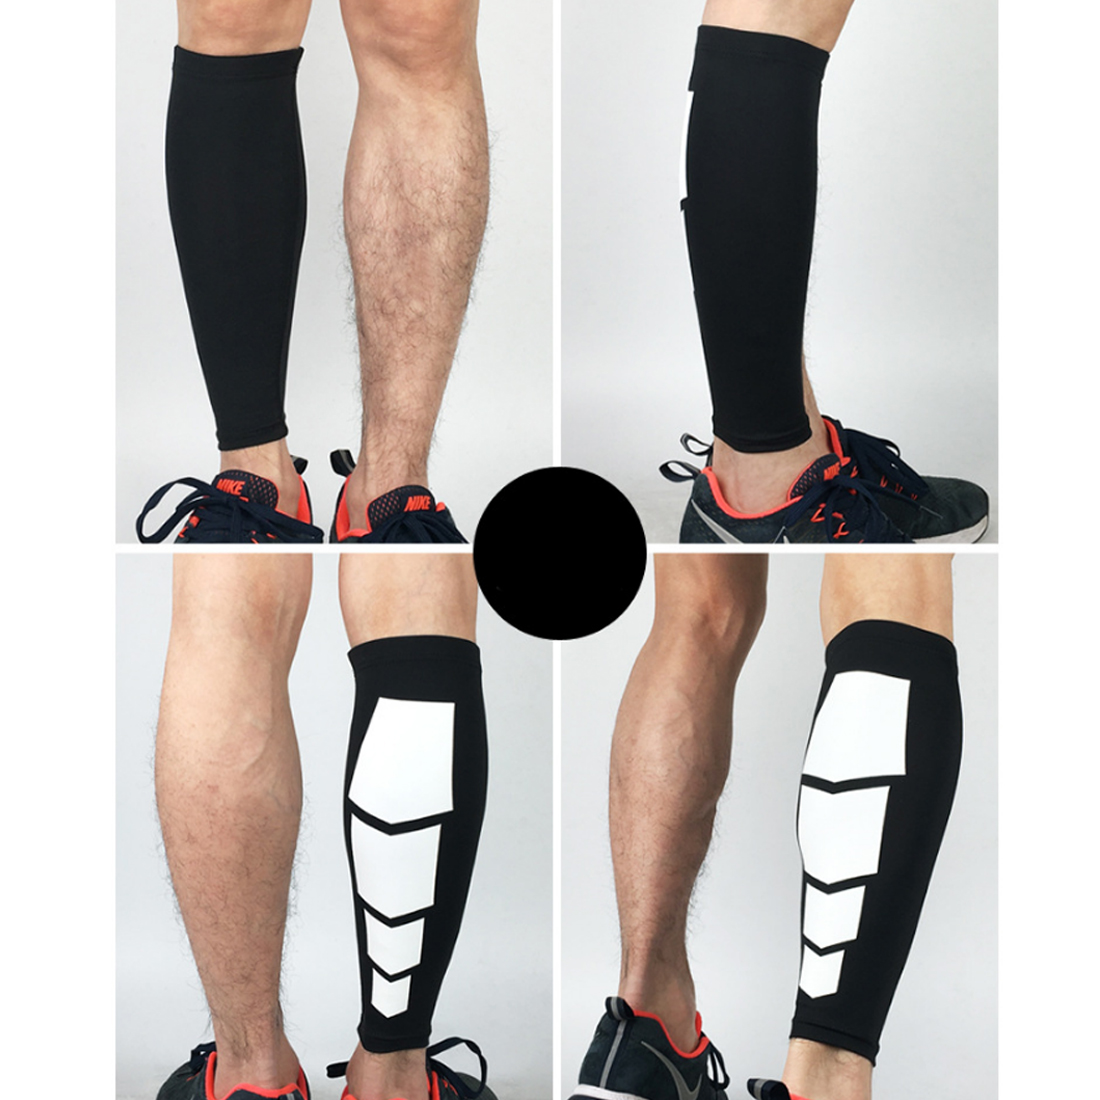 1Pc Compressed Elastic Breathable Leg Guard Calf Socks Protector for Outdoor Climbing - Black M